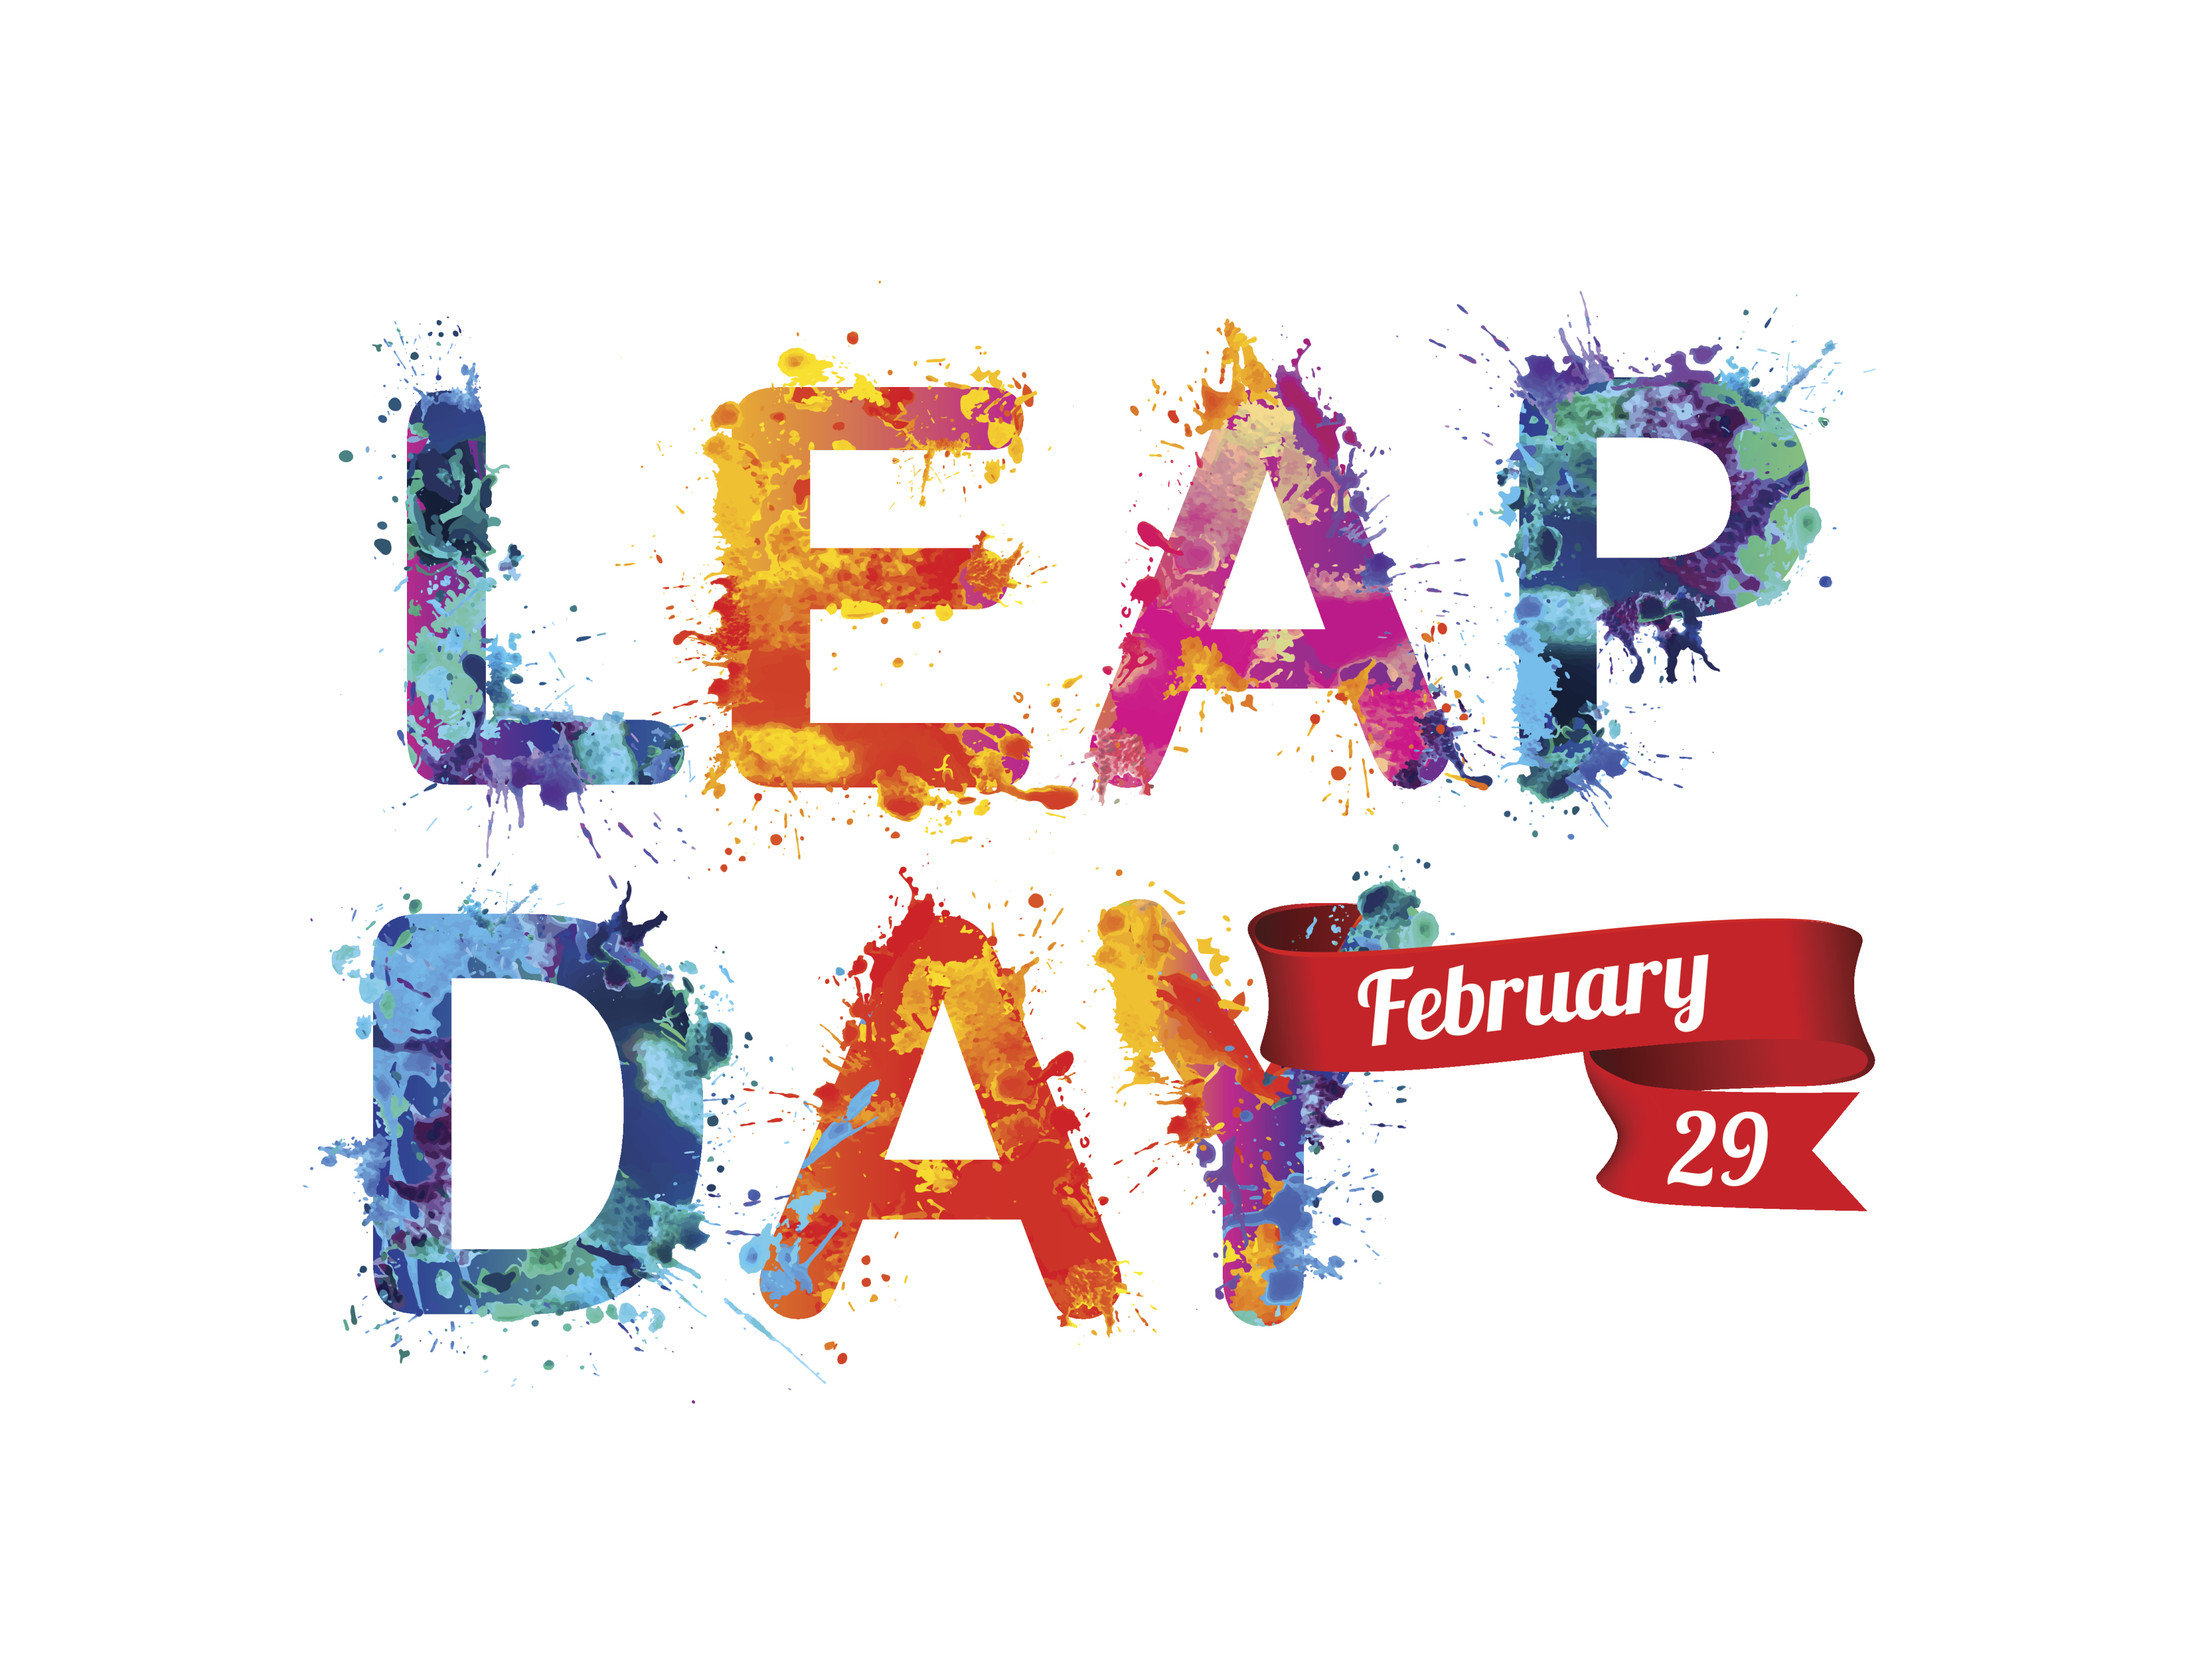 Leap Day 2016 deals and freebies